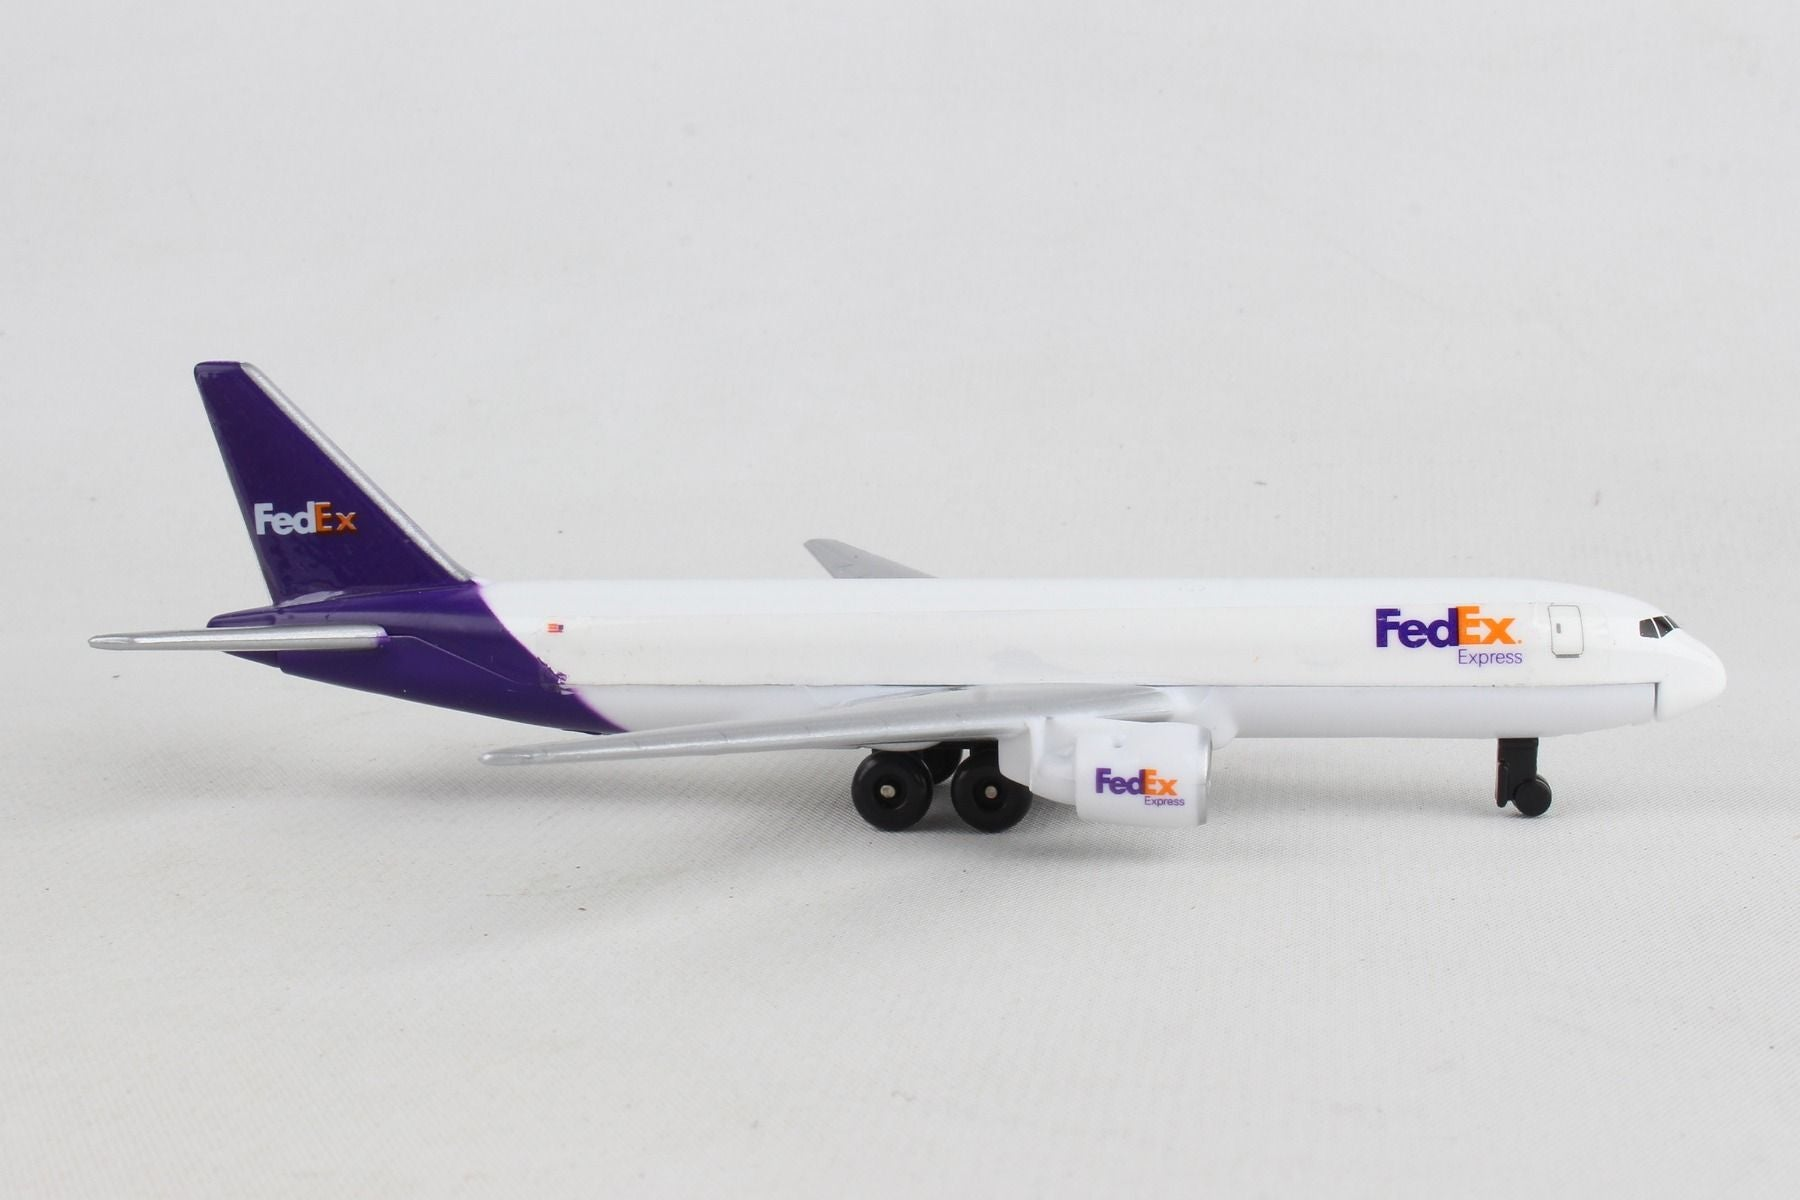 FEDEX SINGLE PLANE - Sky Crew PTY